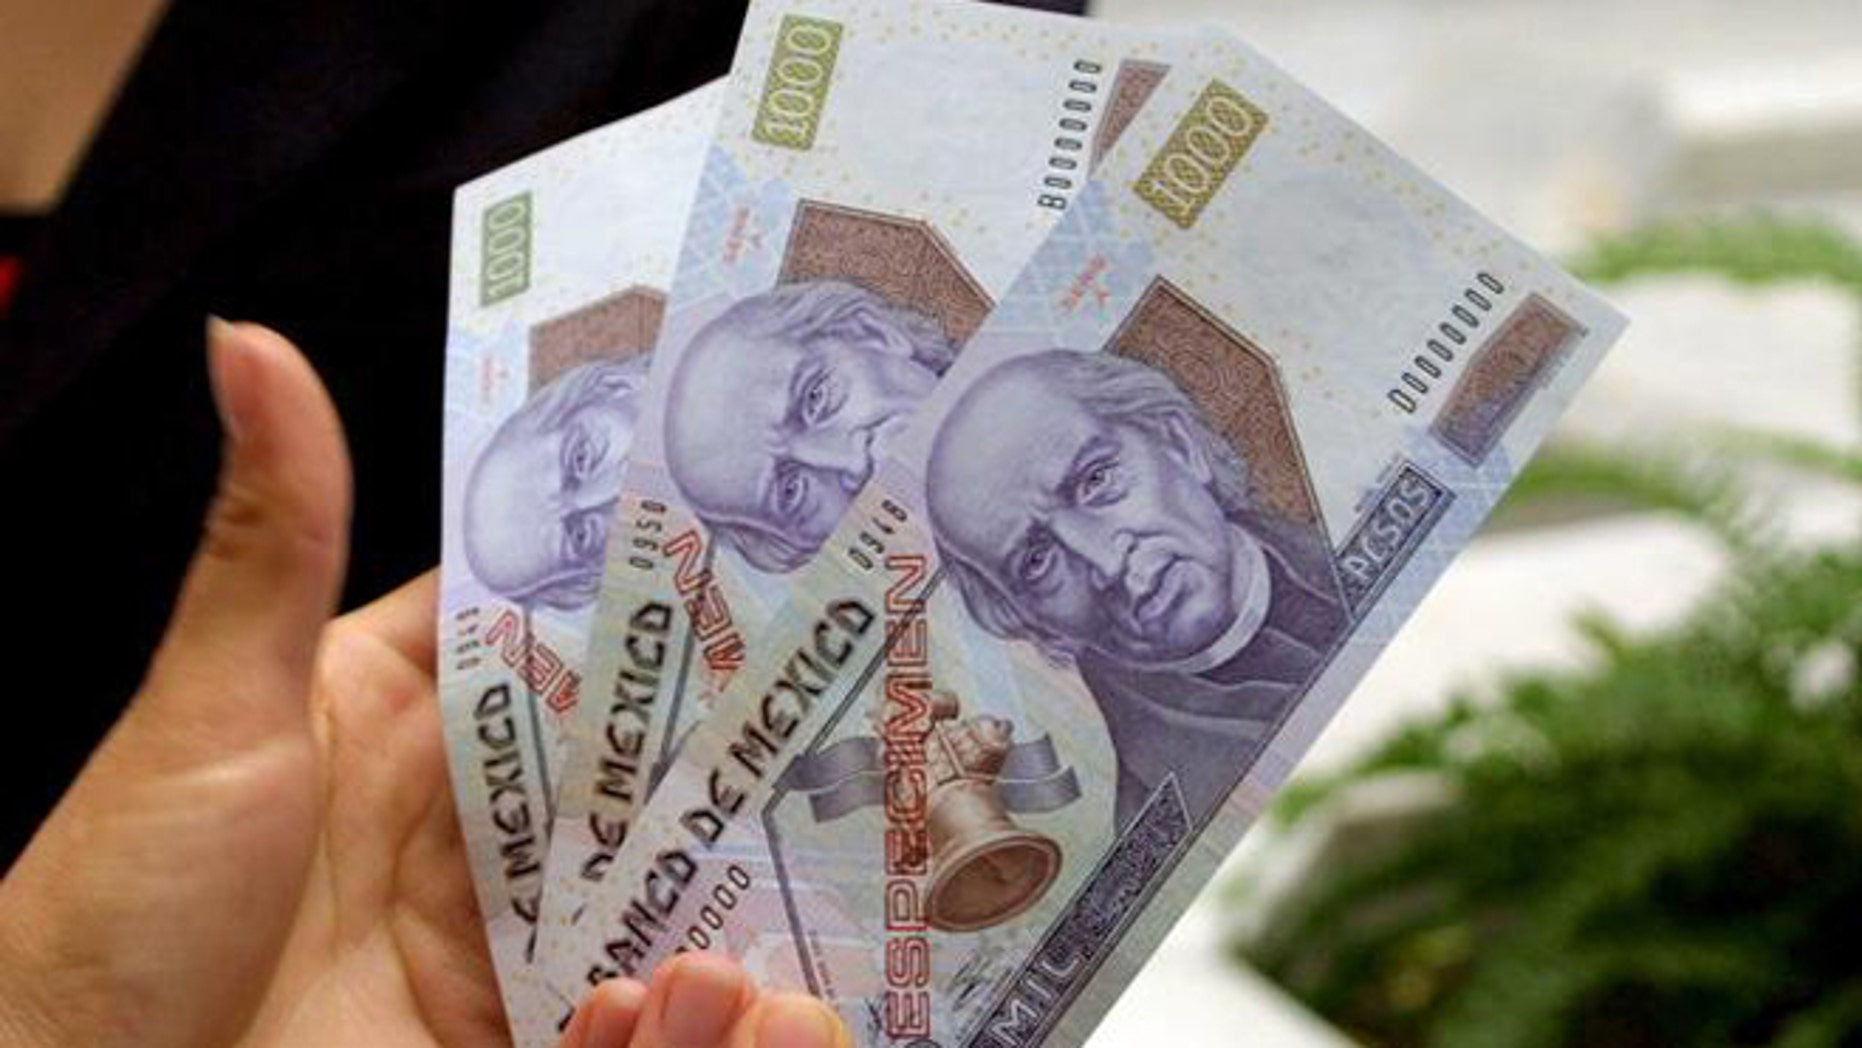 A woman show the new 1,000 peso bill , the largest denomination available in the currency, Thursday, Nov. 4, 2004, in Mexico City.The bill, worth US$87 and 68, will begin circulating on Nov. 15, 2004.  About 50 million will be put into circulation.(AP Photo)